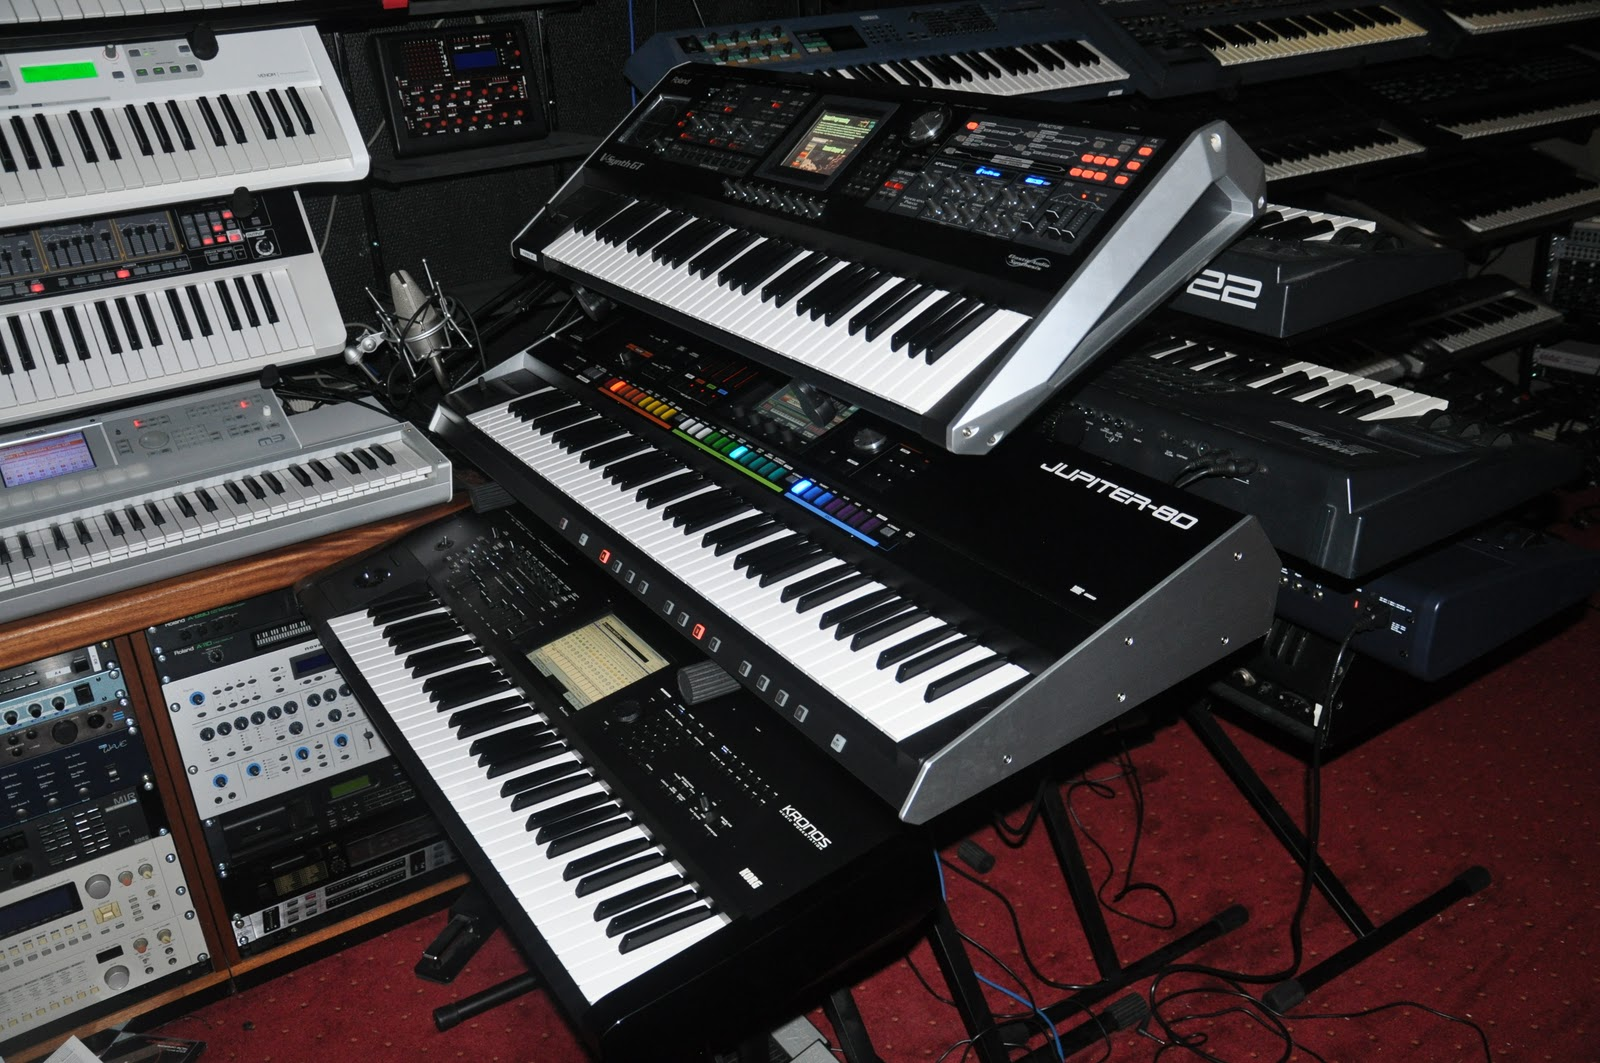 Synth nl Blog: Korg Kronos and Roland Jupiter-80 in the Studio